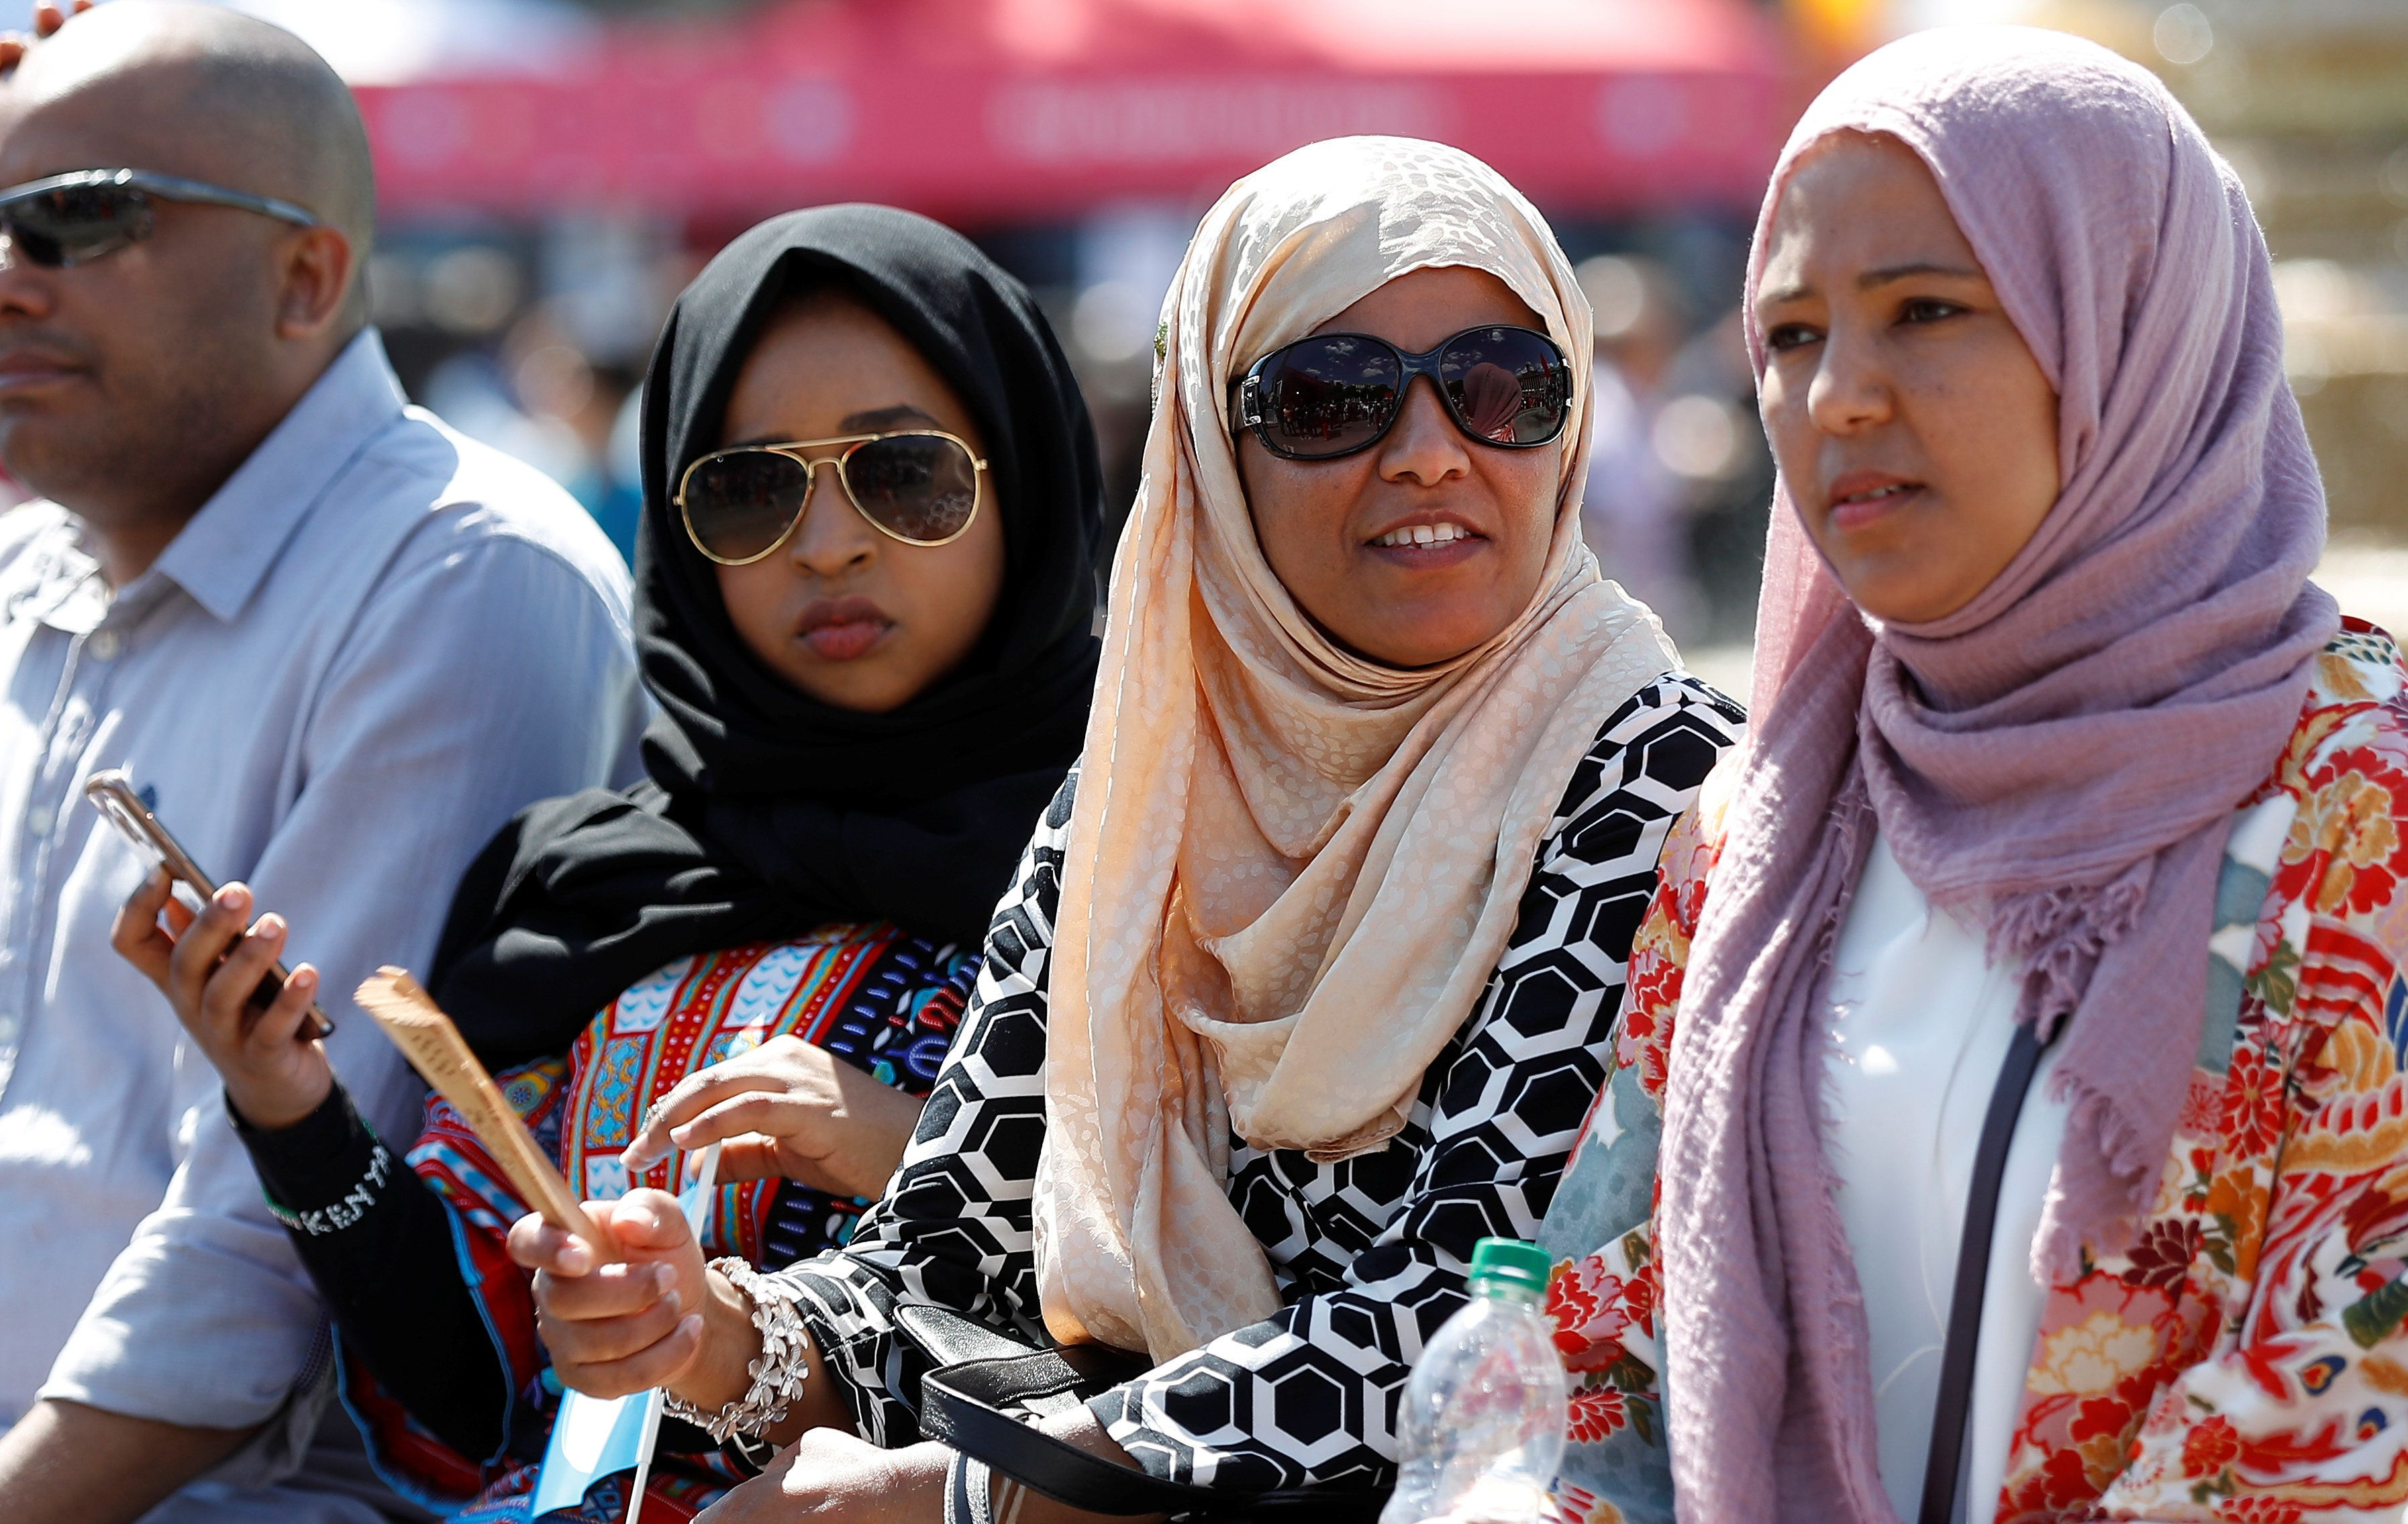 Women attend Eid Festival 2017 in London. A British hate-monitoring group said in-person Islamophobic incidents in